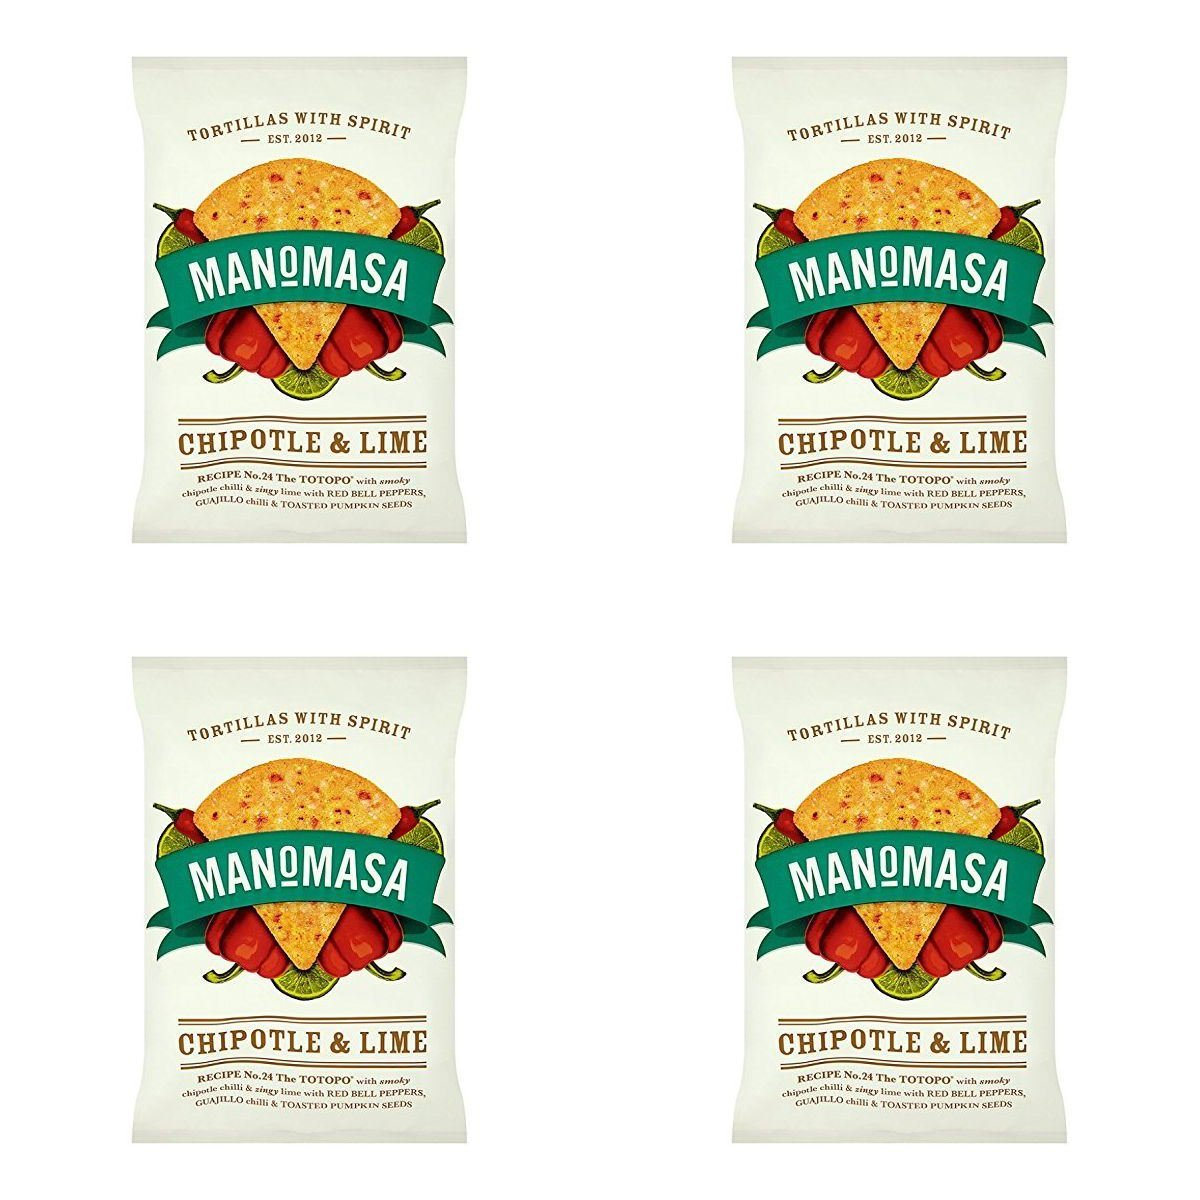 Amazon.com: (4 PACK) - Manomasa Tortilla Chips - Chipotle & Lime| 160 x 10 gx |4 PACK - SUPER SAVER - SAVE MONEY: Health & Personal Care